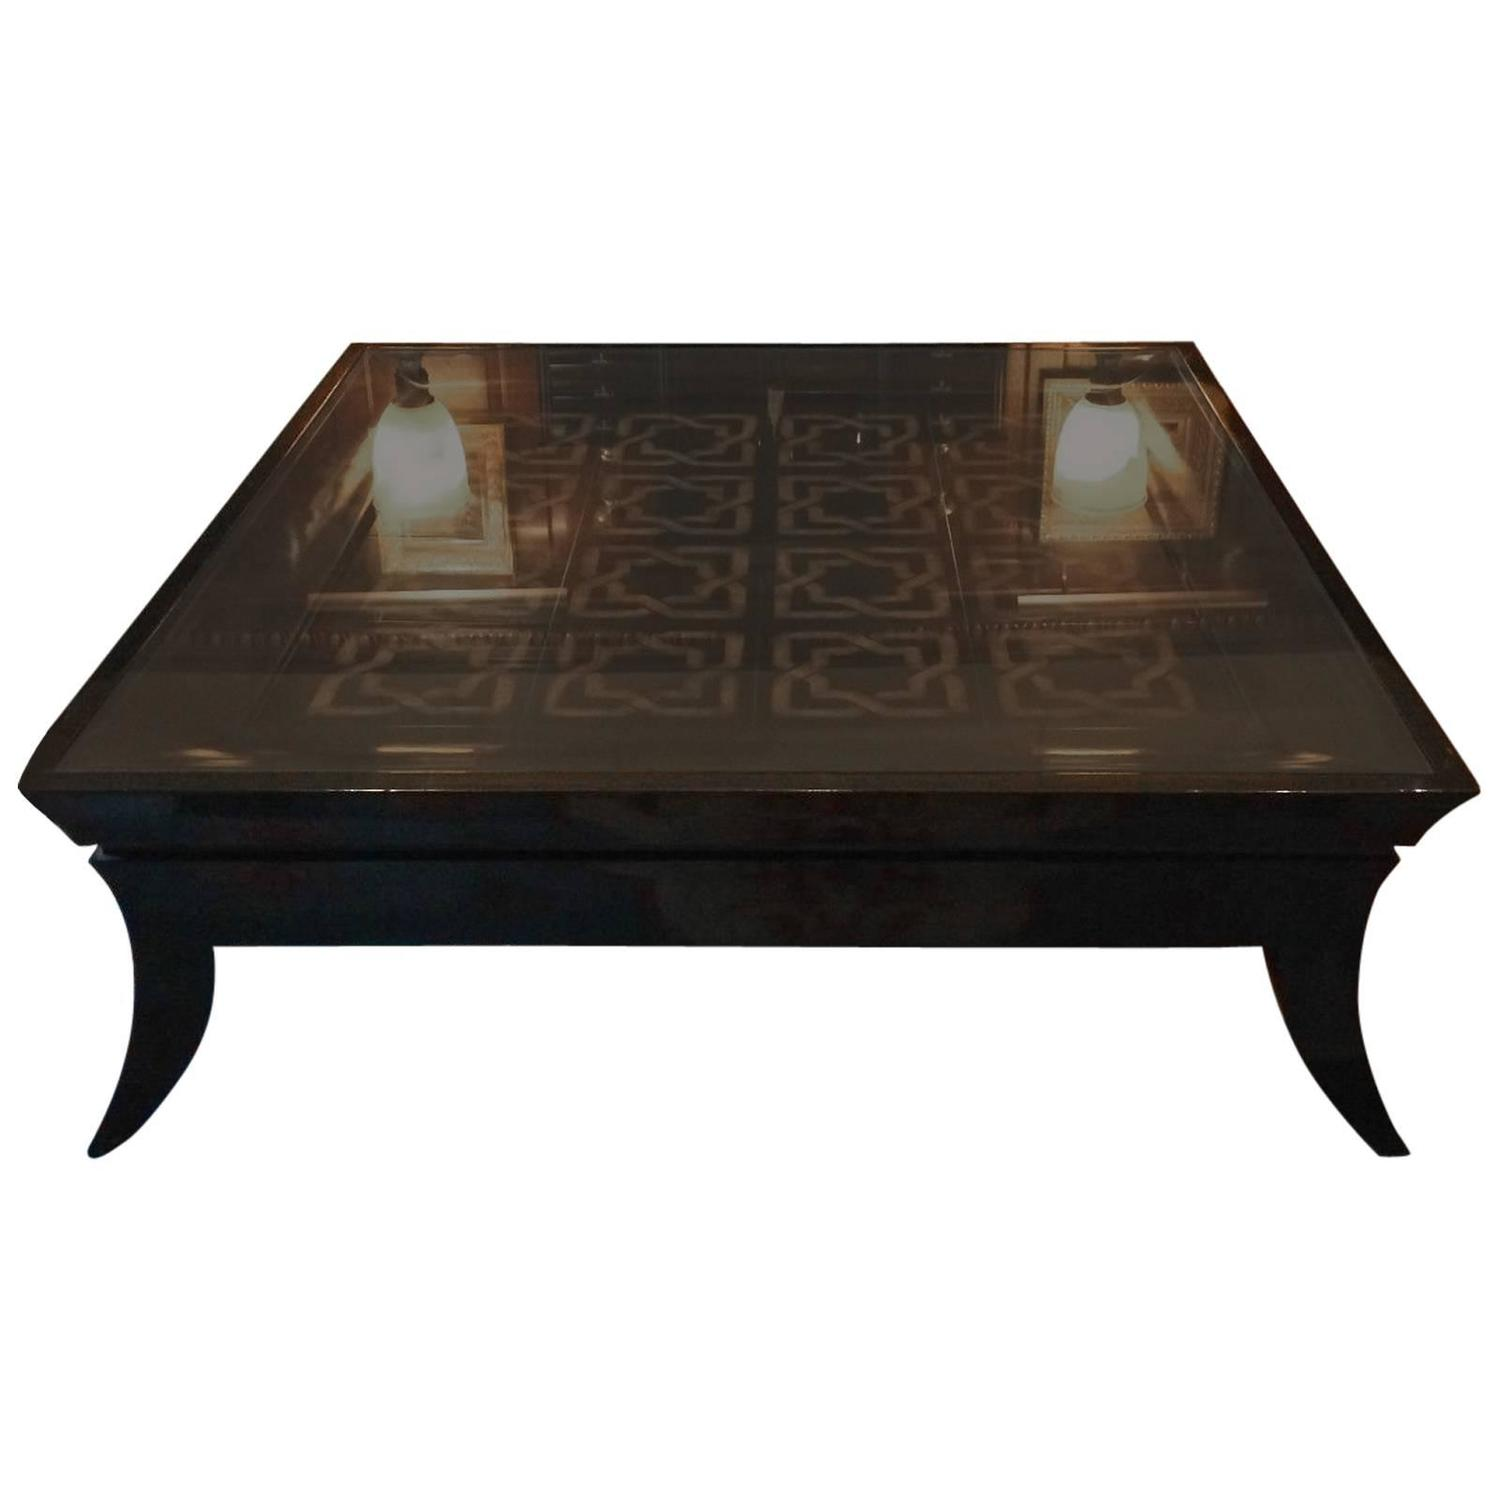 Large coffee table glass topped tiled modern at 1stdibs for Big glass coffee table